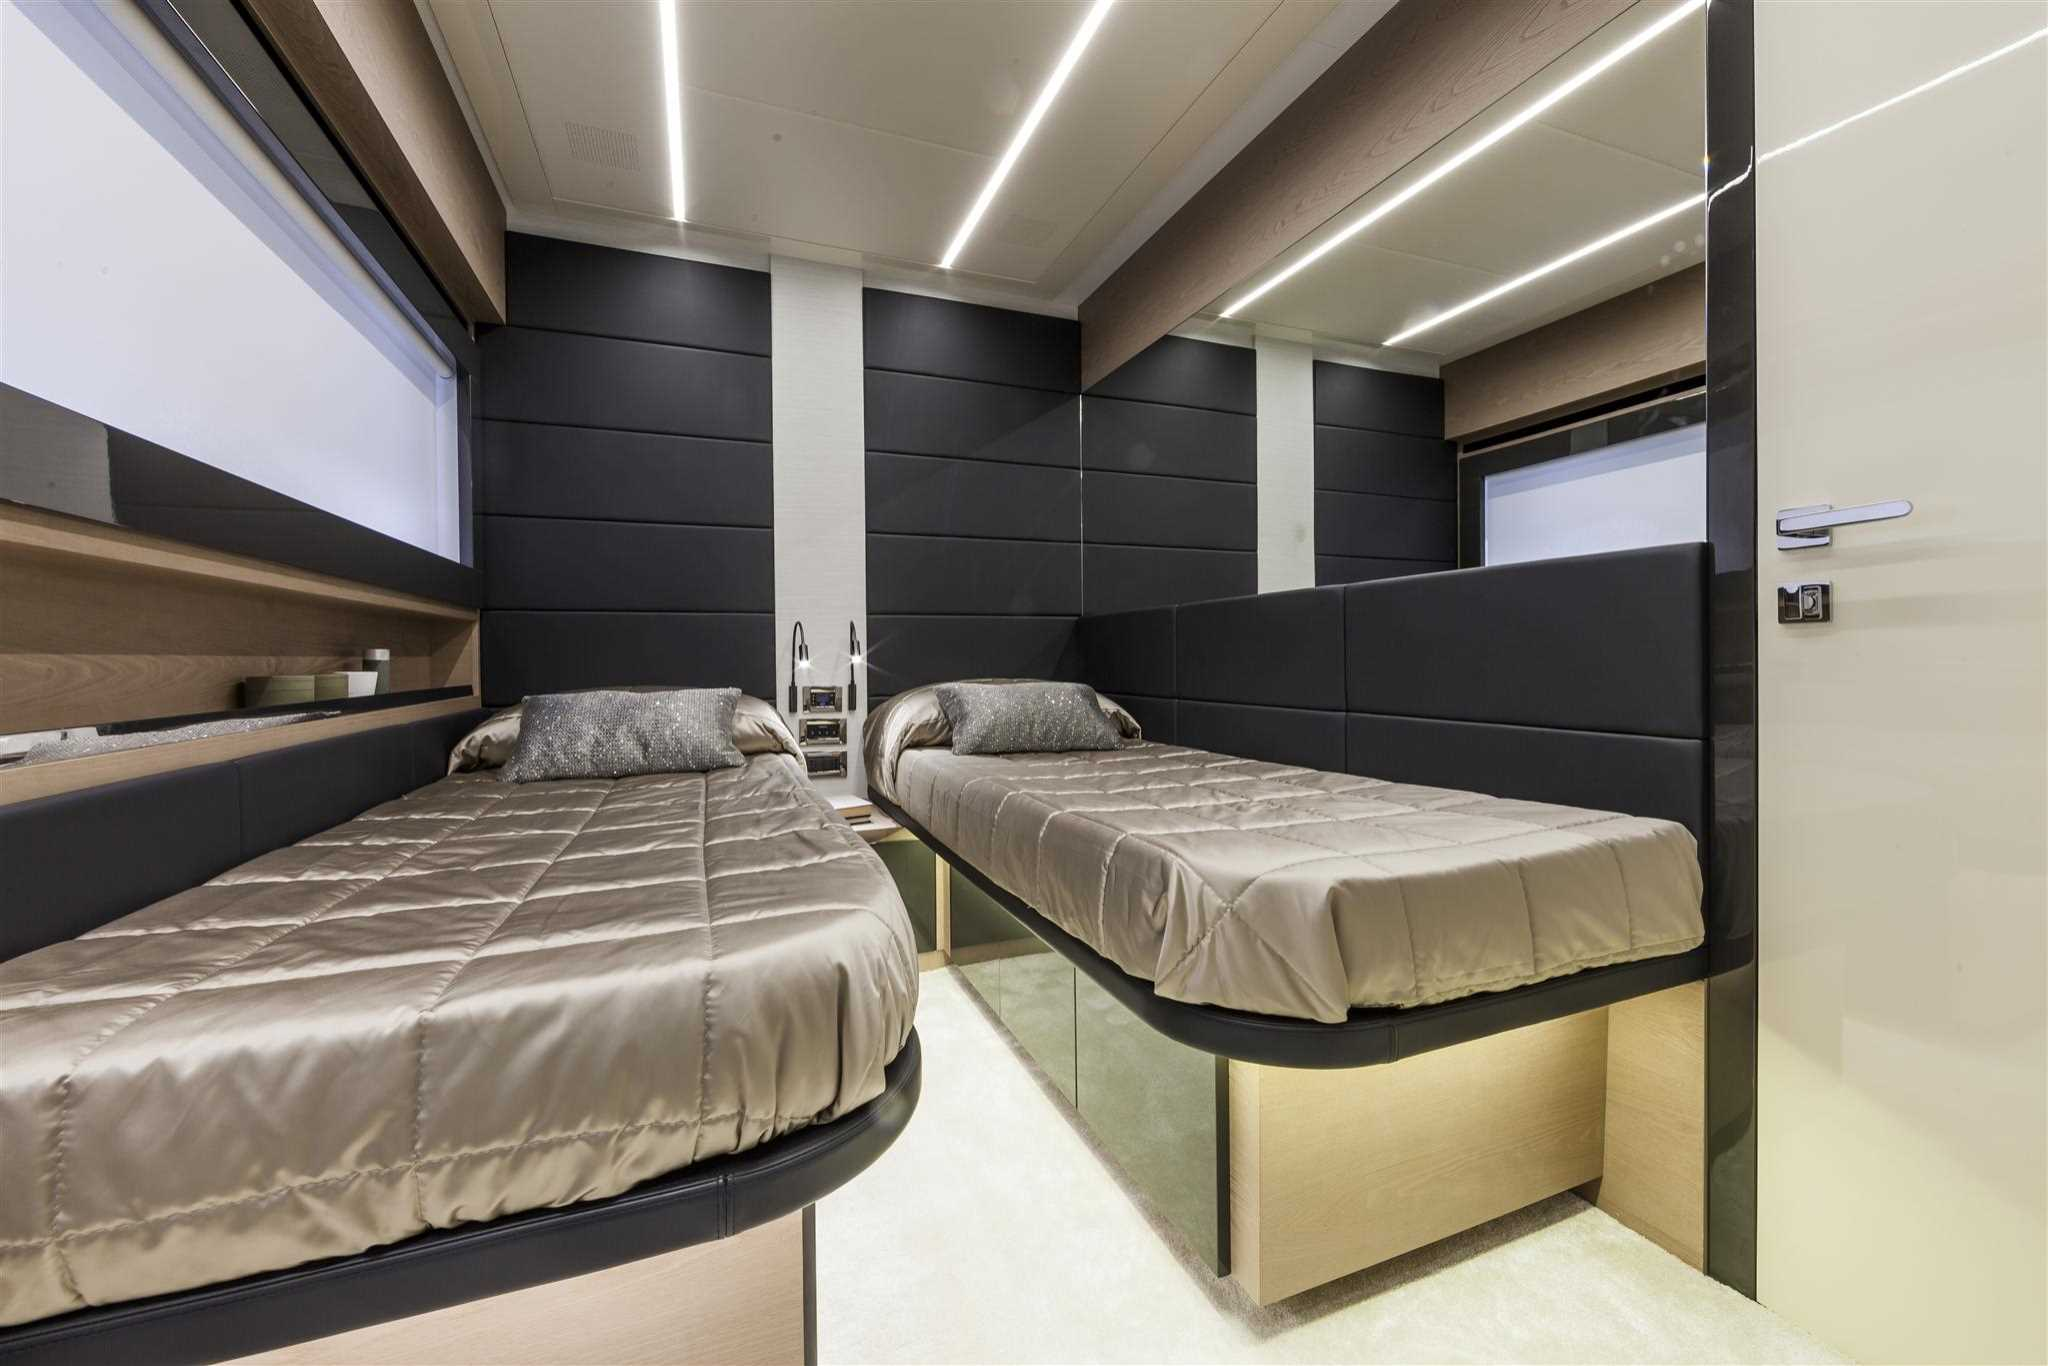 2018 Pershing 70 Yacht Guest Beds